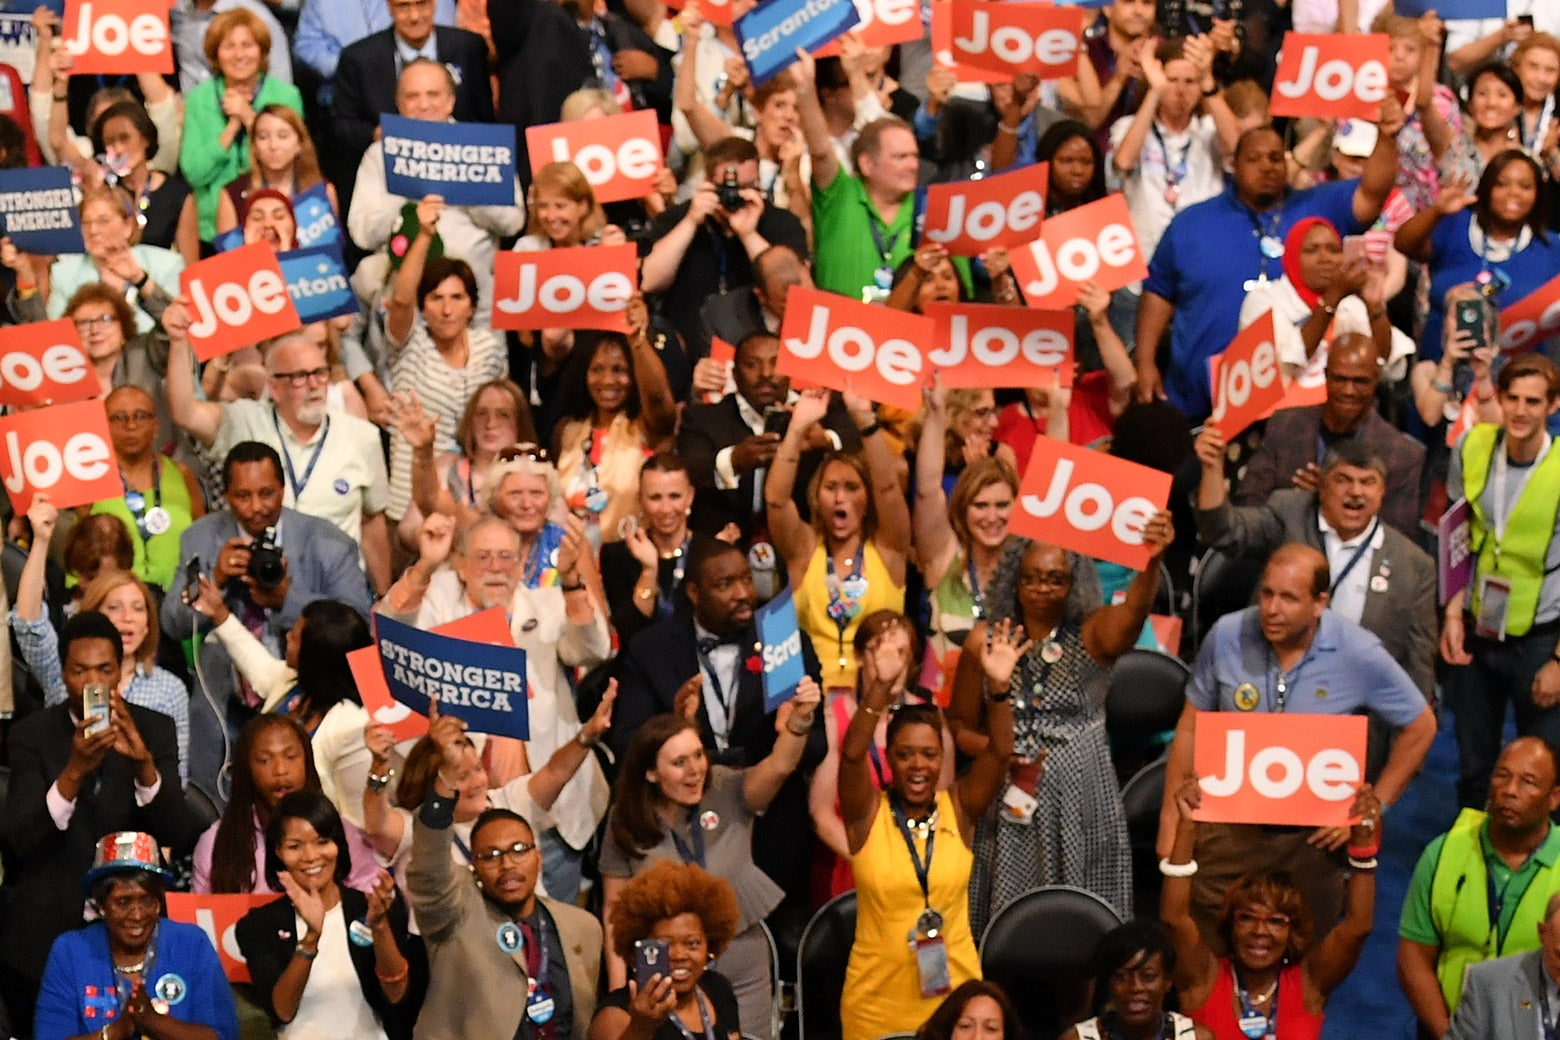 """A crowd cheers and holds up """"Joe"""" and """"STRONGER TOGETHER"""" signs."""